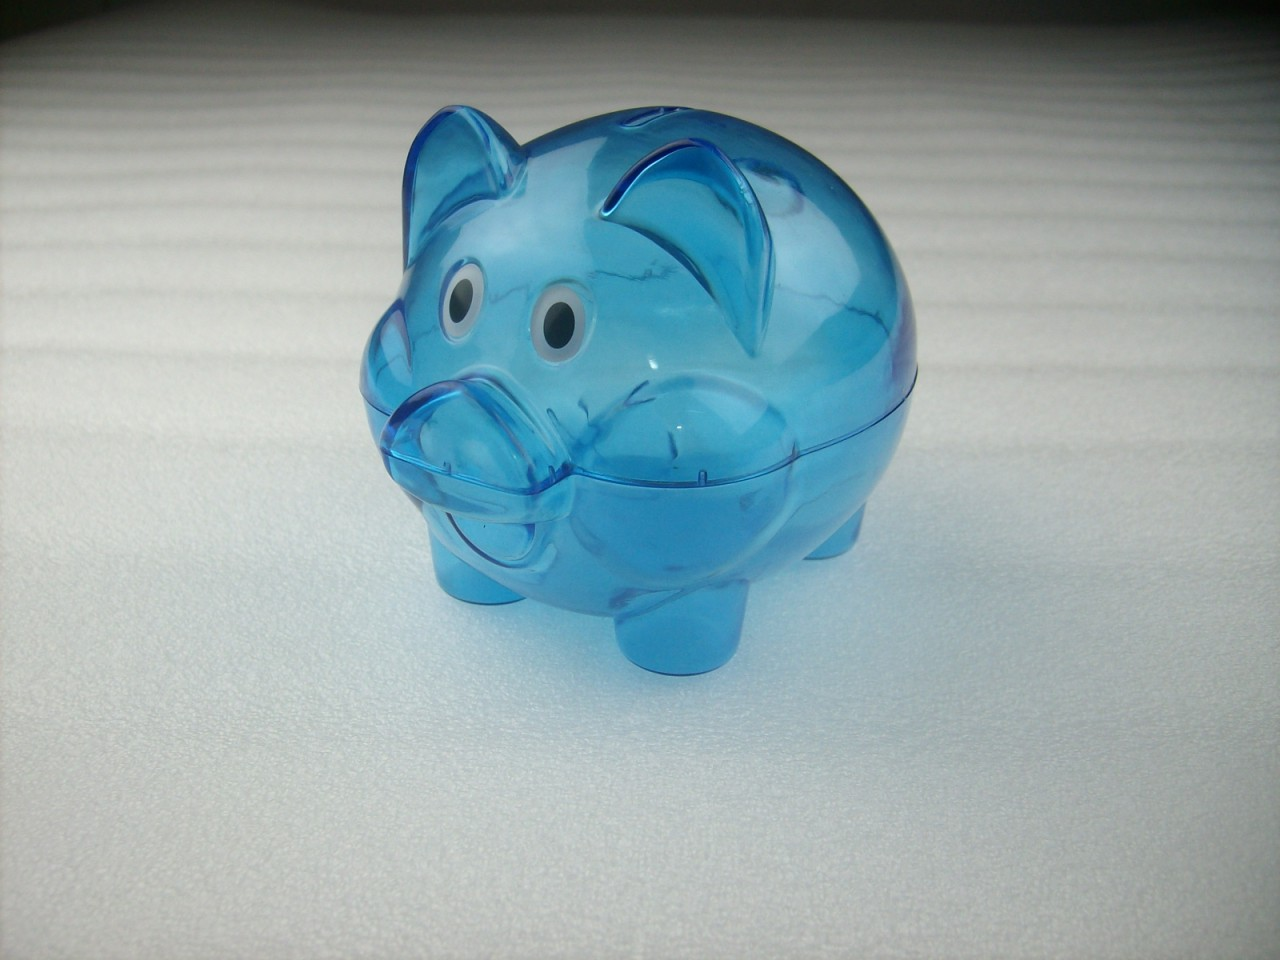 Mini transparent plastic coin pig piggy money bank blue without stopper ebay - Piggy bank without stopper ...